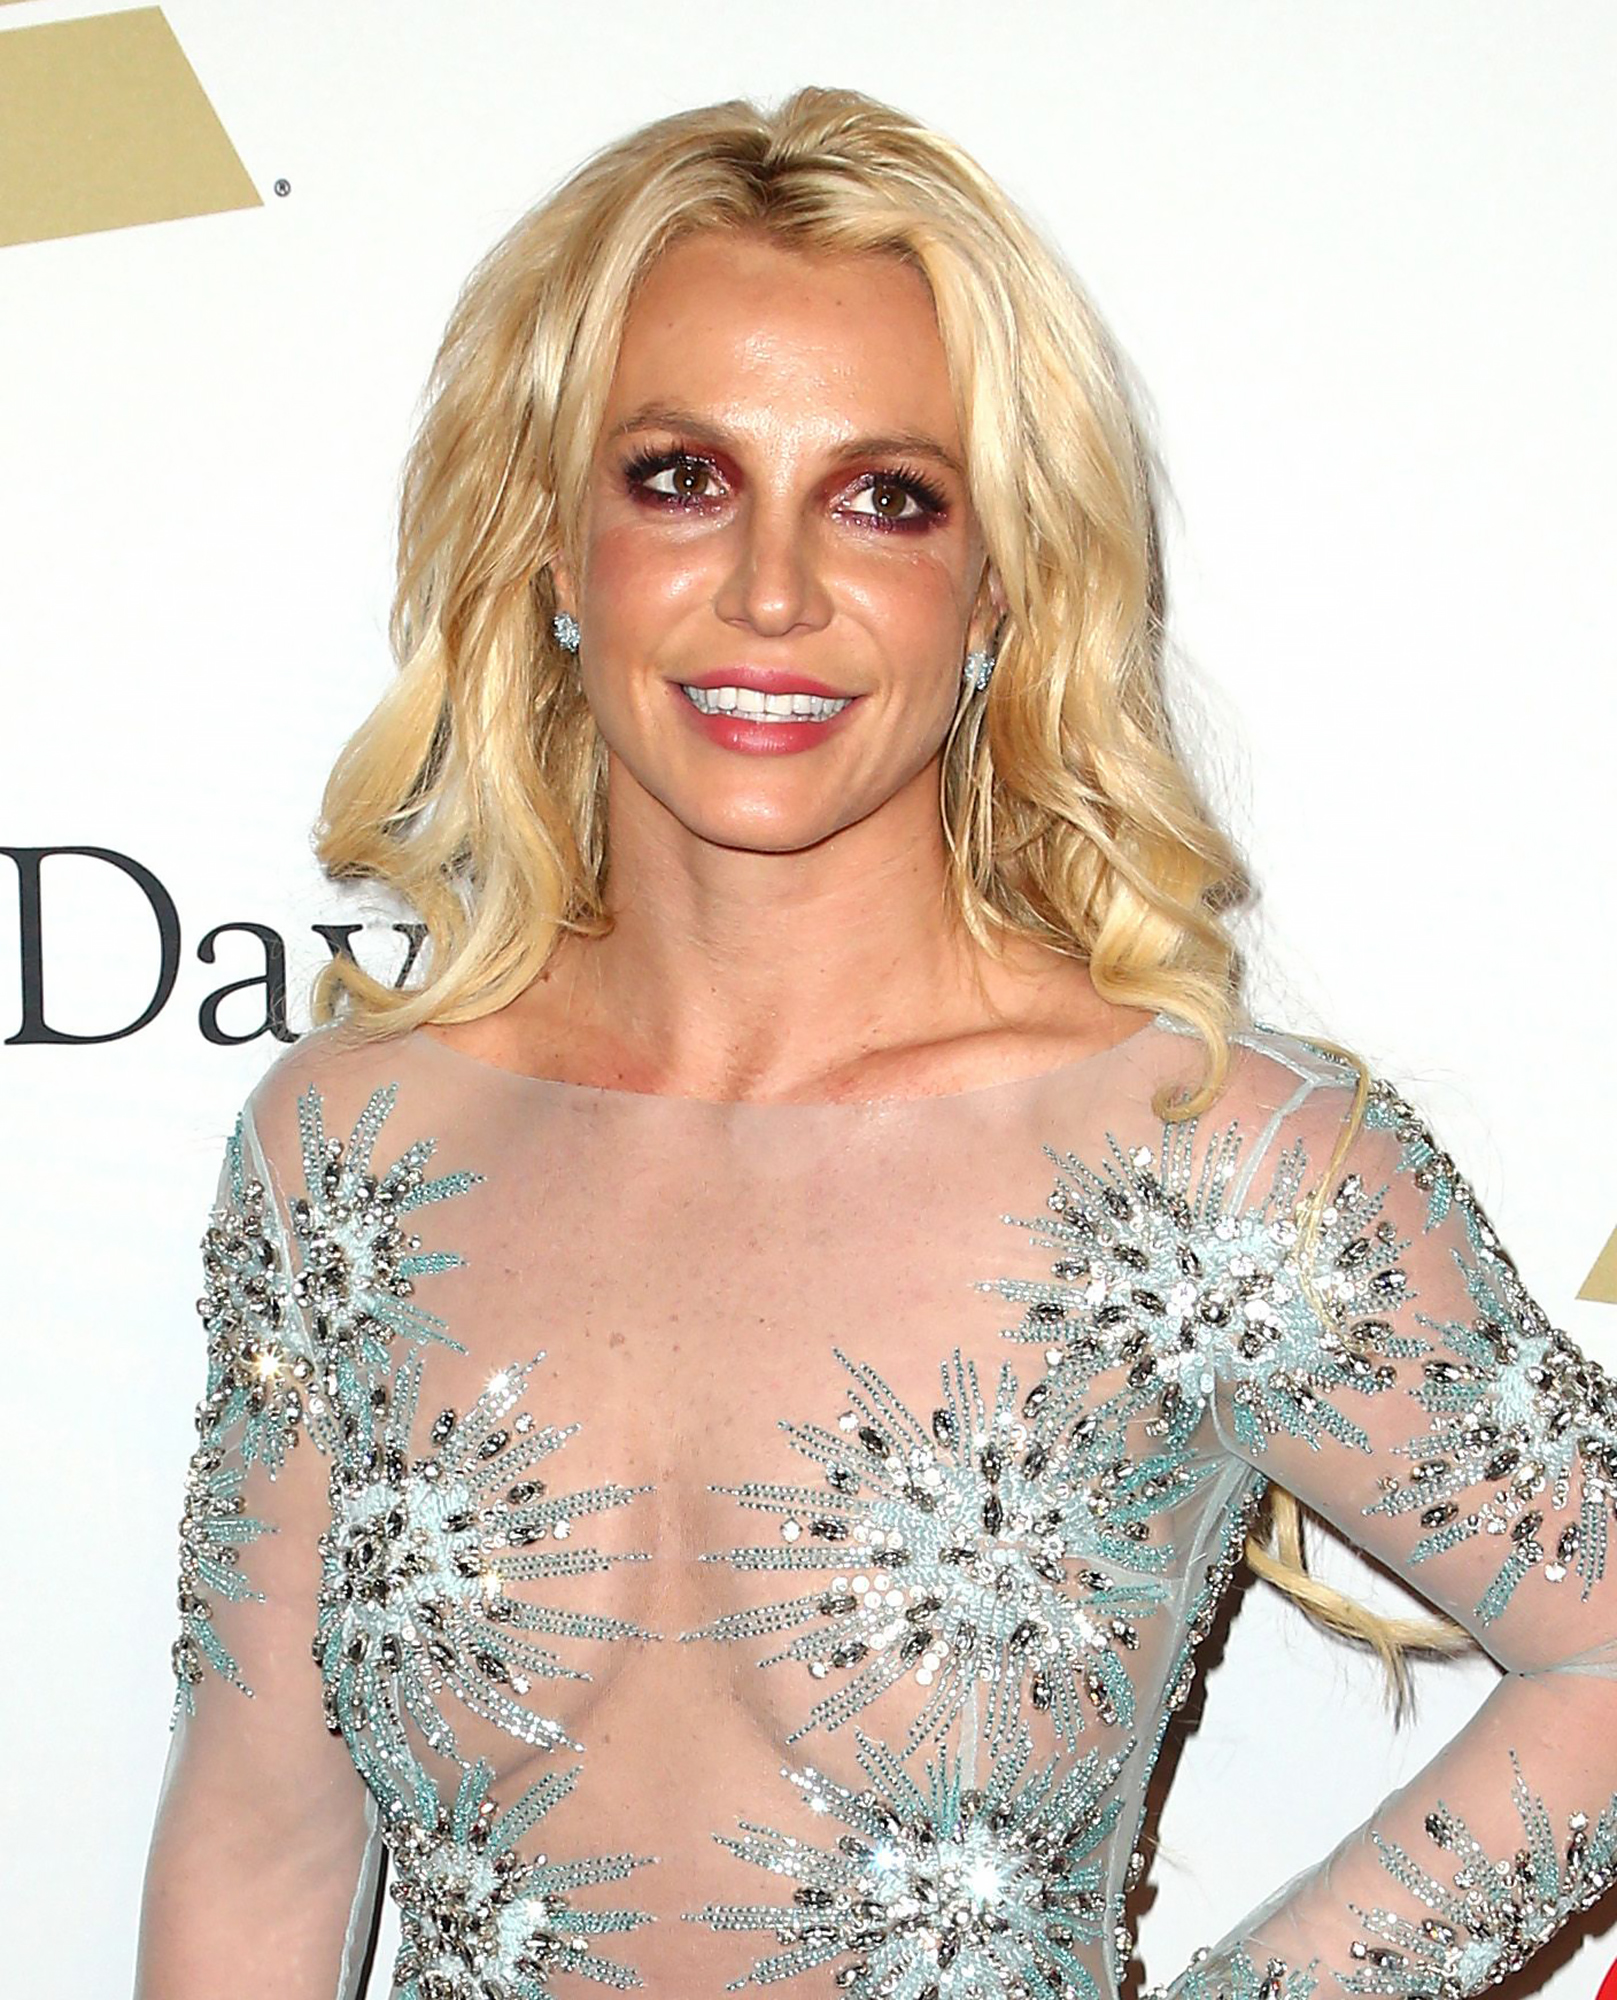 Britney Spears No Record of Gym Fire